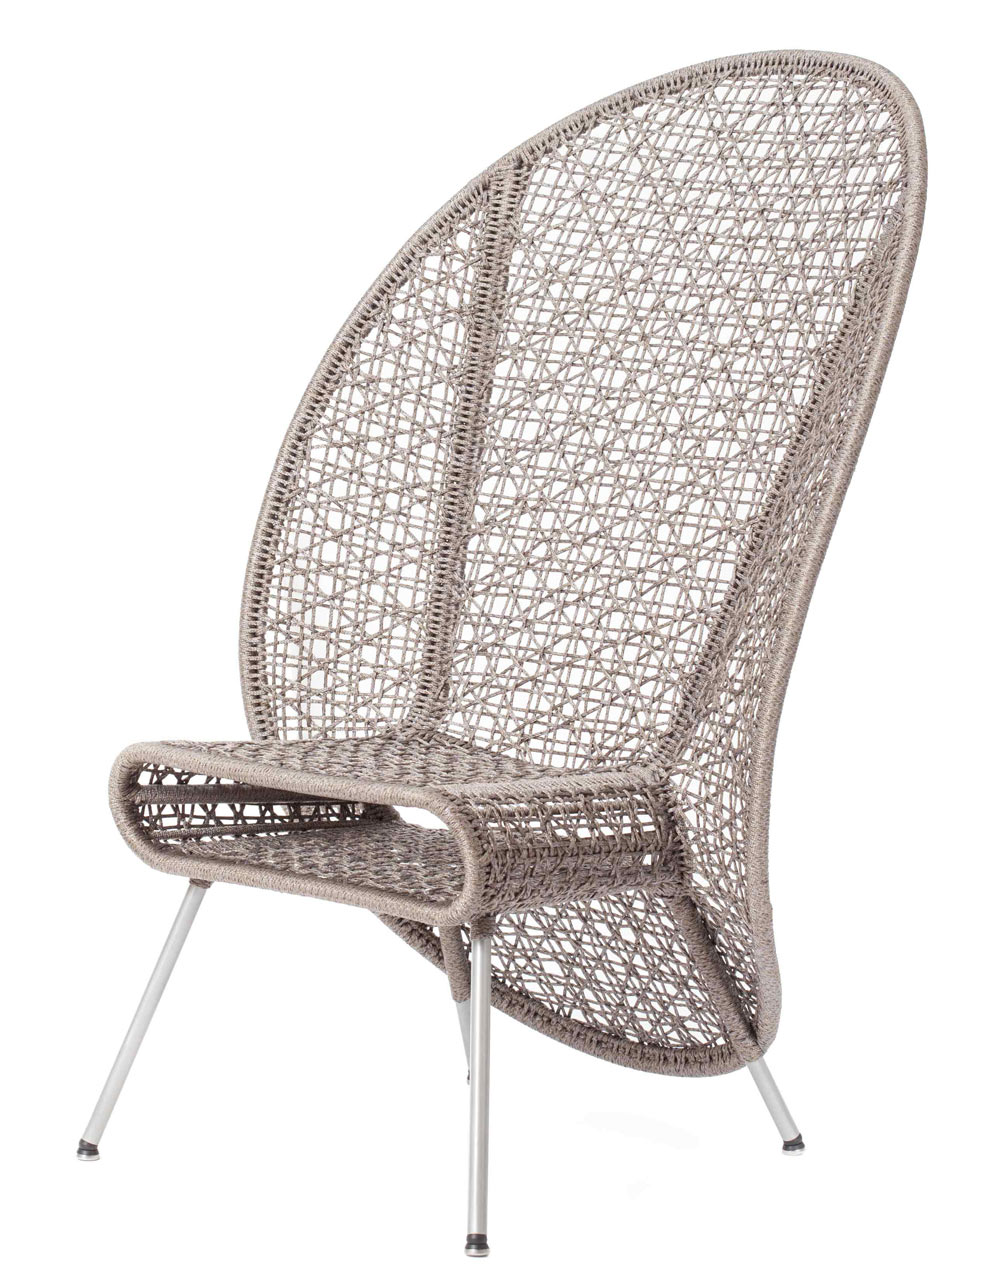 Gaga-Design-Bocca-Chair-2